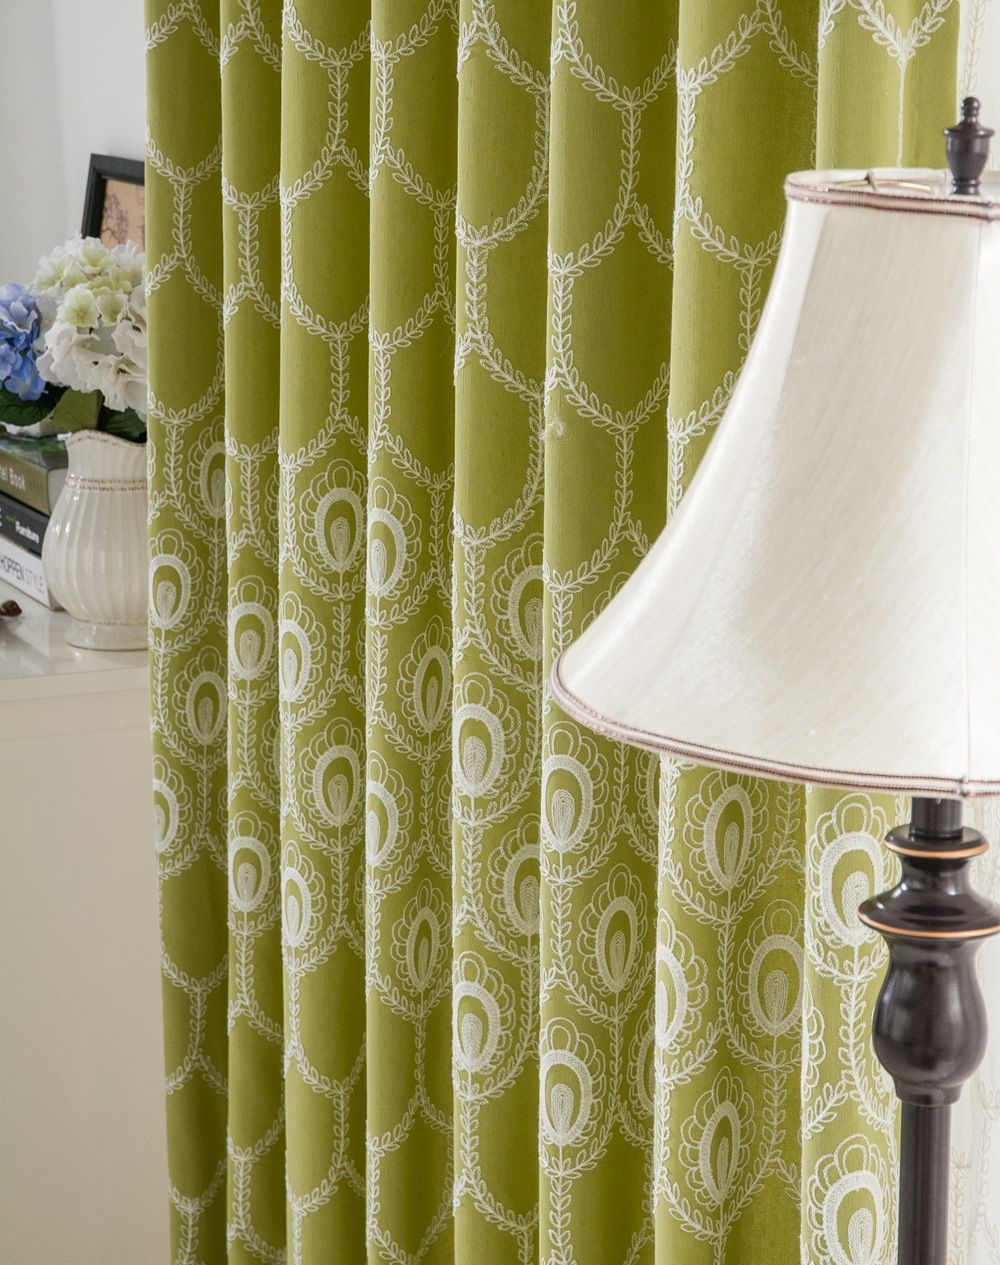 Phoenix Ling Cotton Embroidery Curtain With Special Cutting Edge French Window Embroidered Living Room Curtains Luxury Sheer-in Curtains from Home, Kitchen & Garden on Aliexpress.com   Alibaba Group